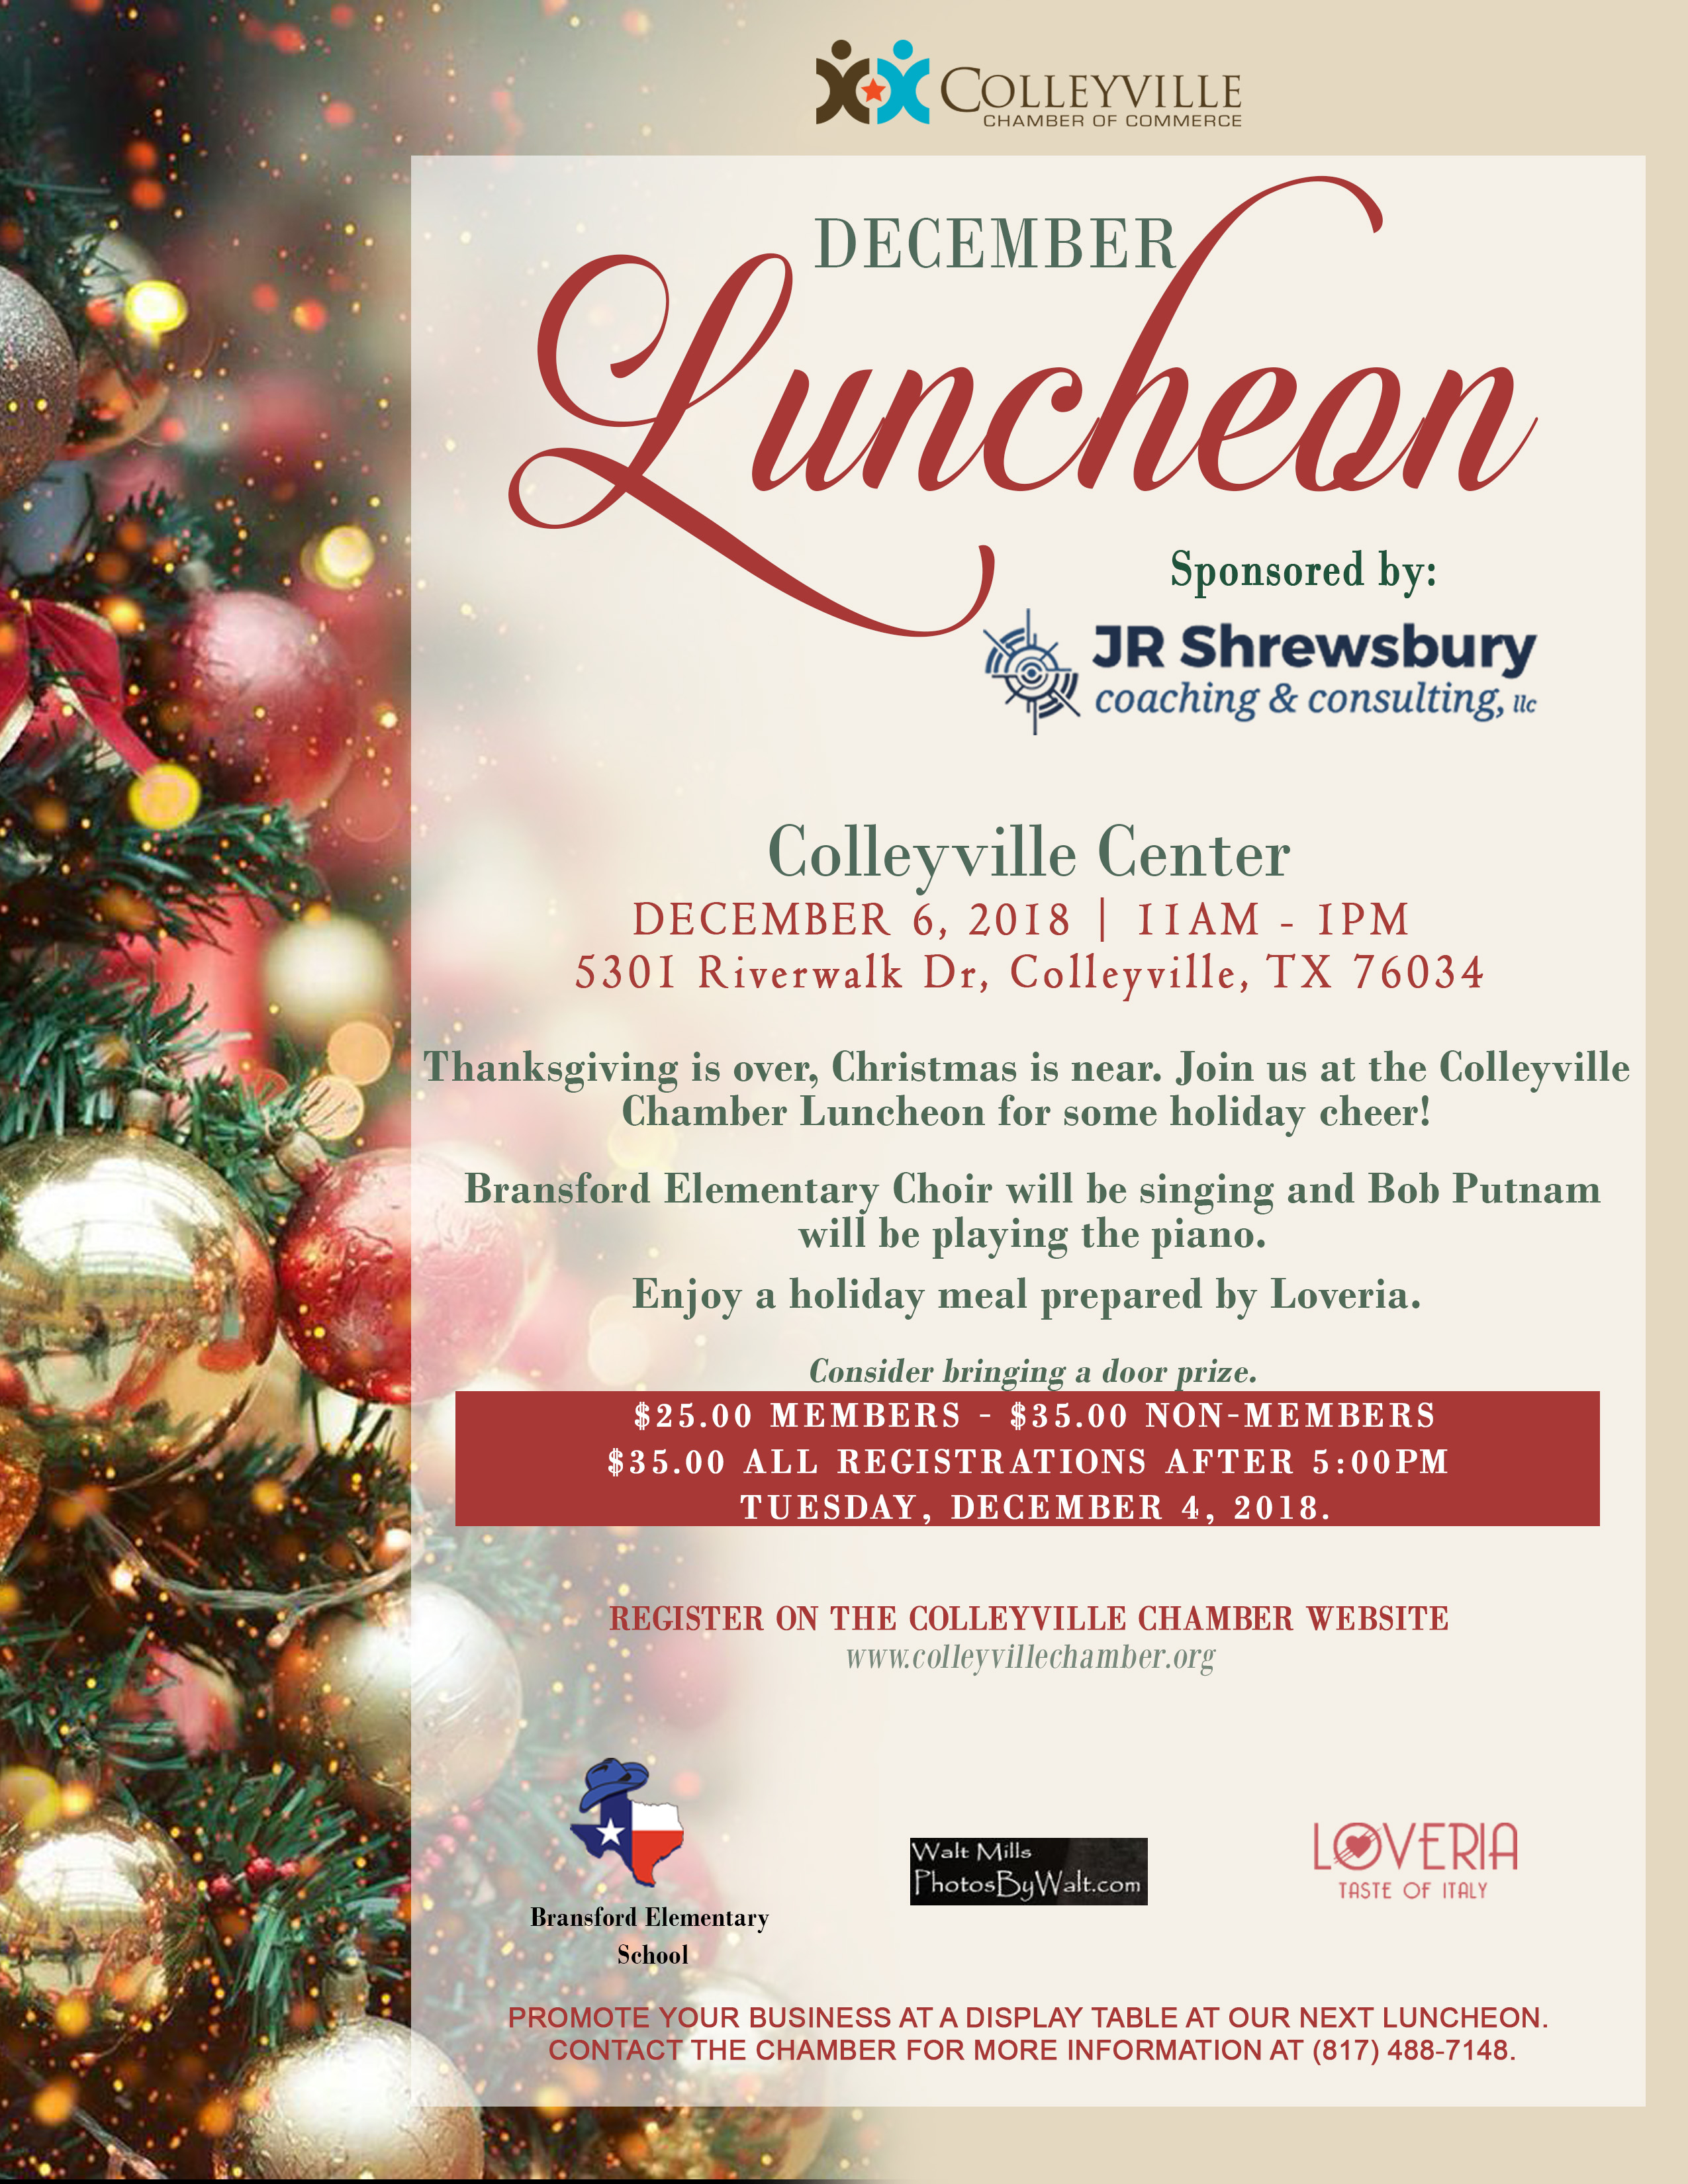 December Monthly Luncheon Flyer